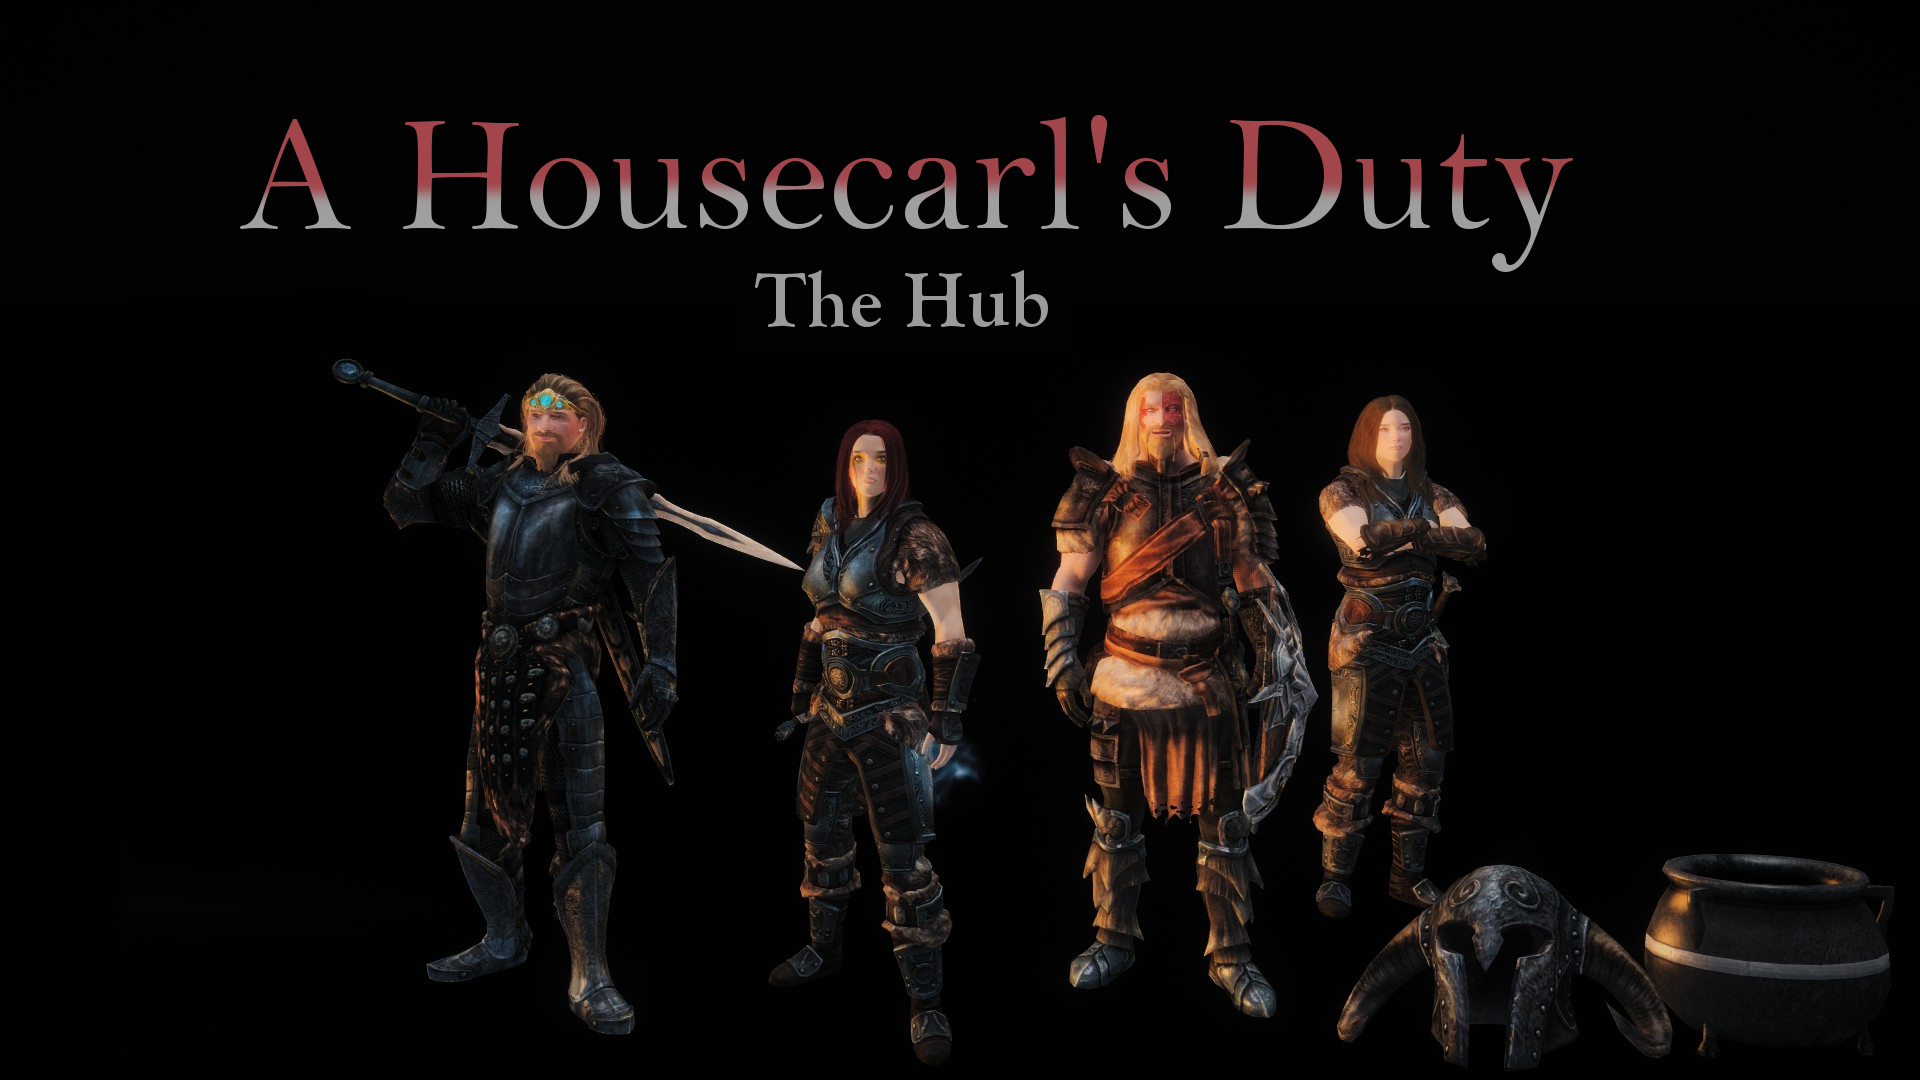 A Housecarl's Duty - The Hub